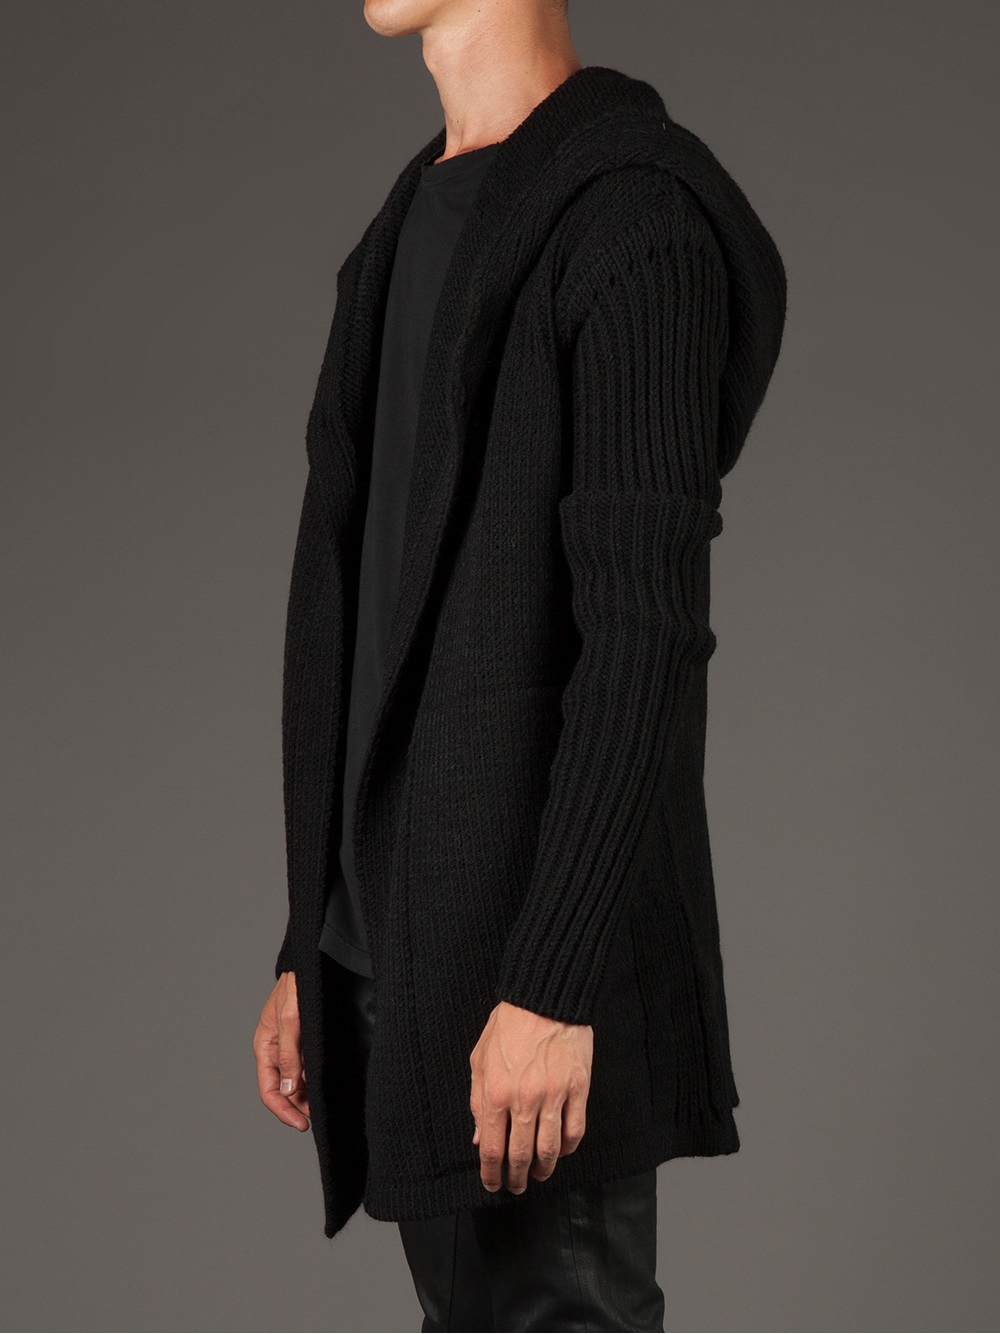 Rick owens Hooded Cardigan in Black for Men | Lyst